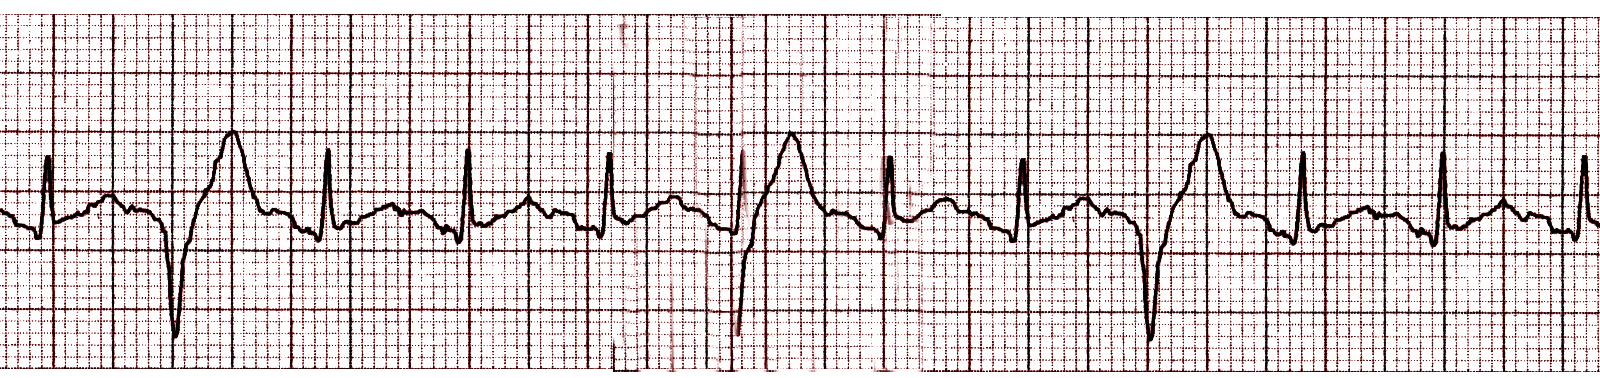 Premature Ventricular Contraction (PVC) Article - StatPearls